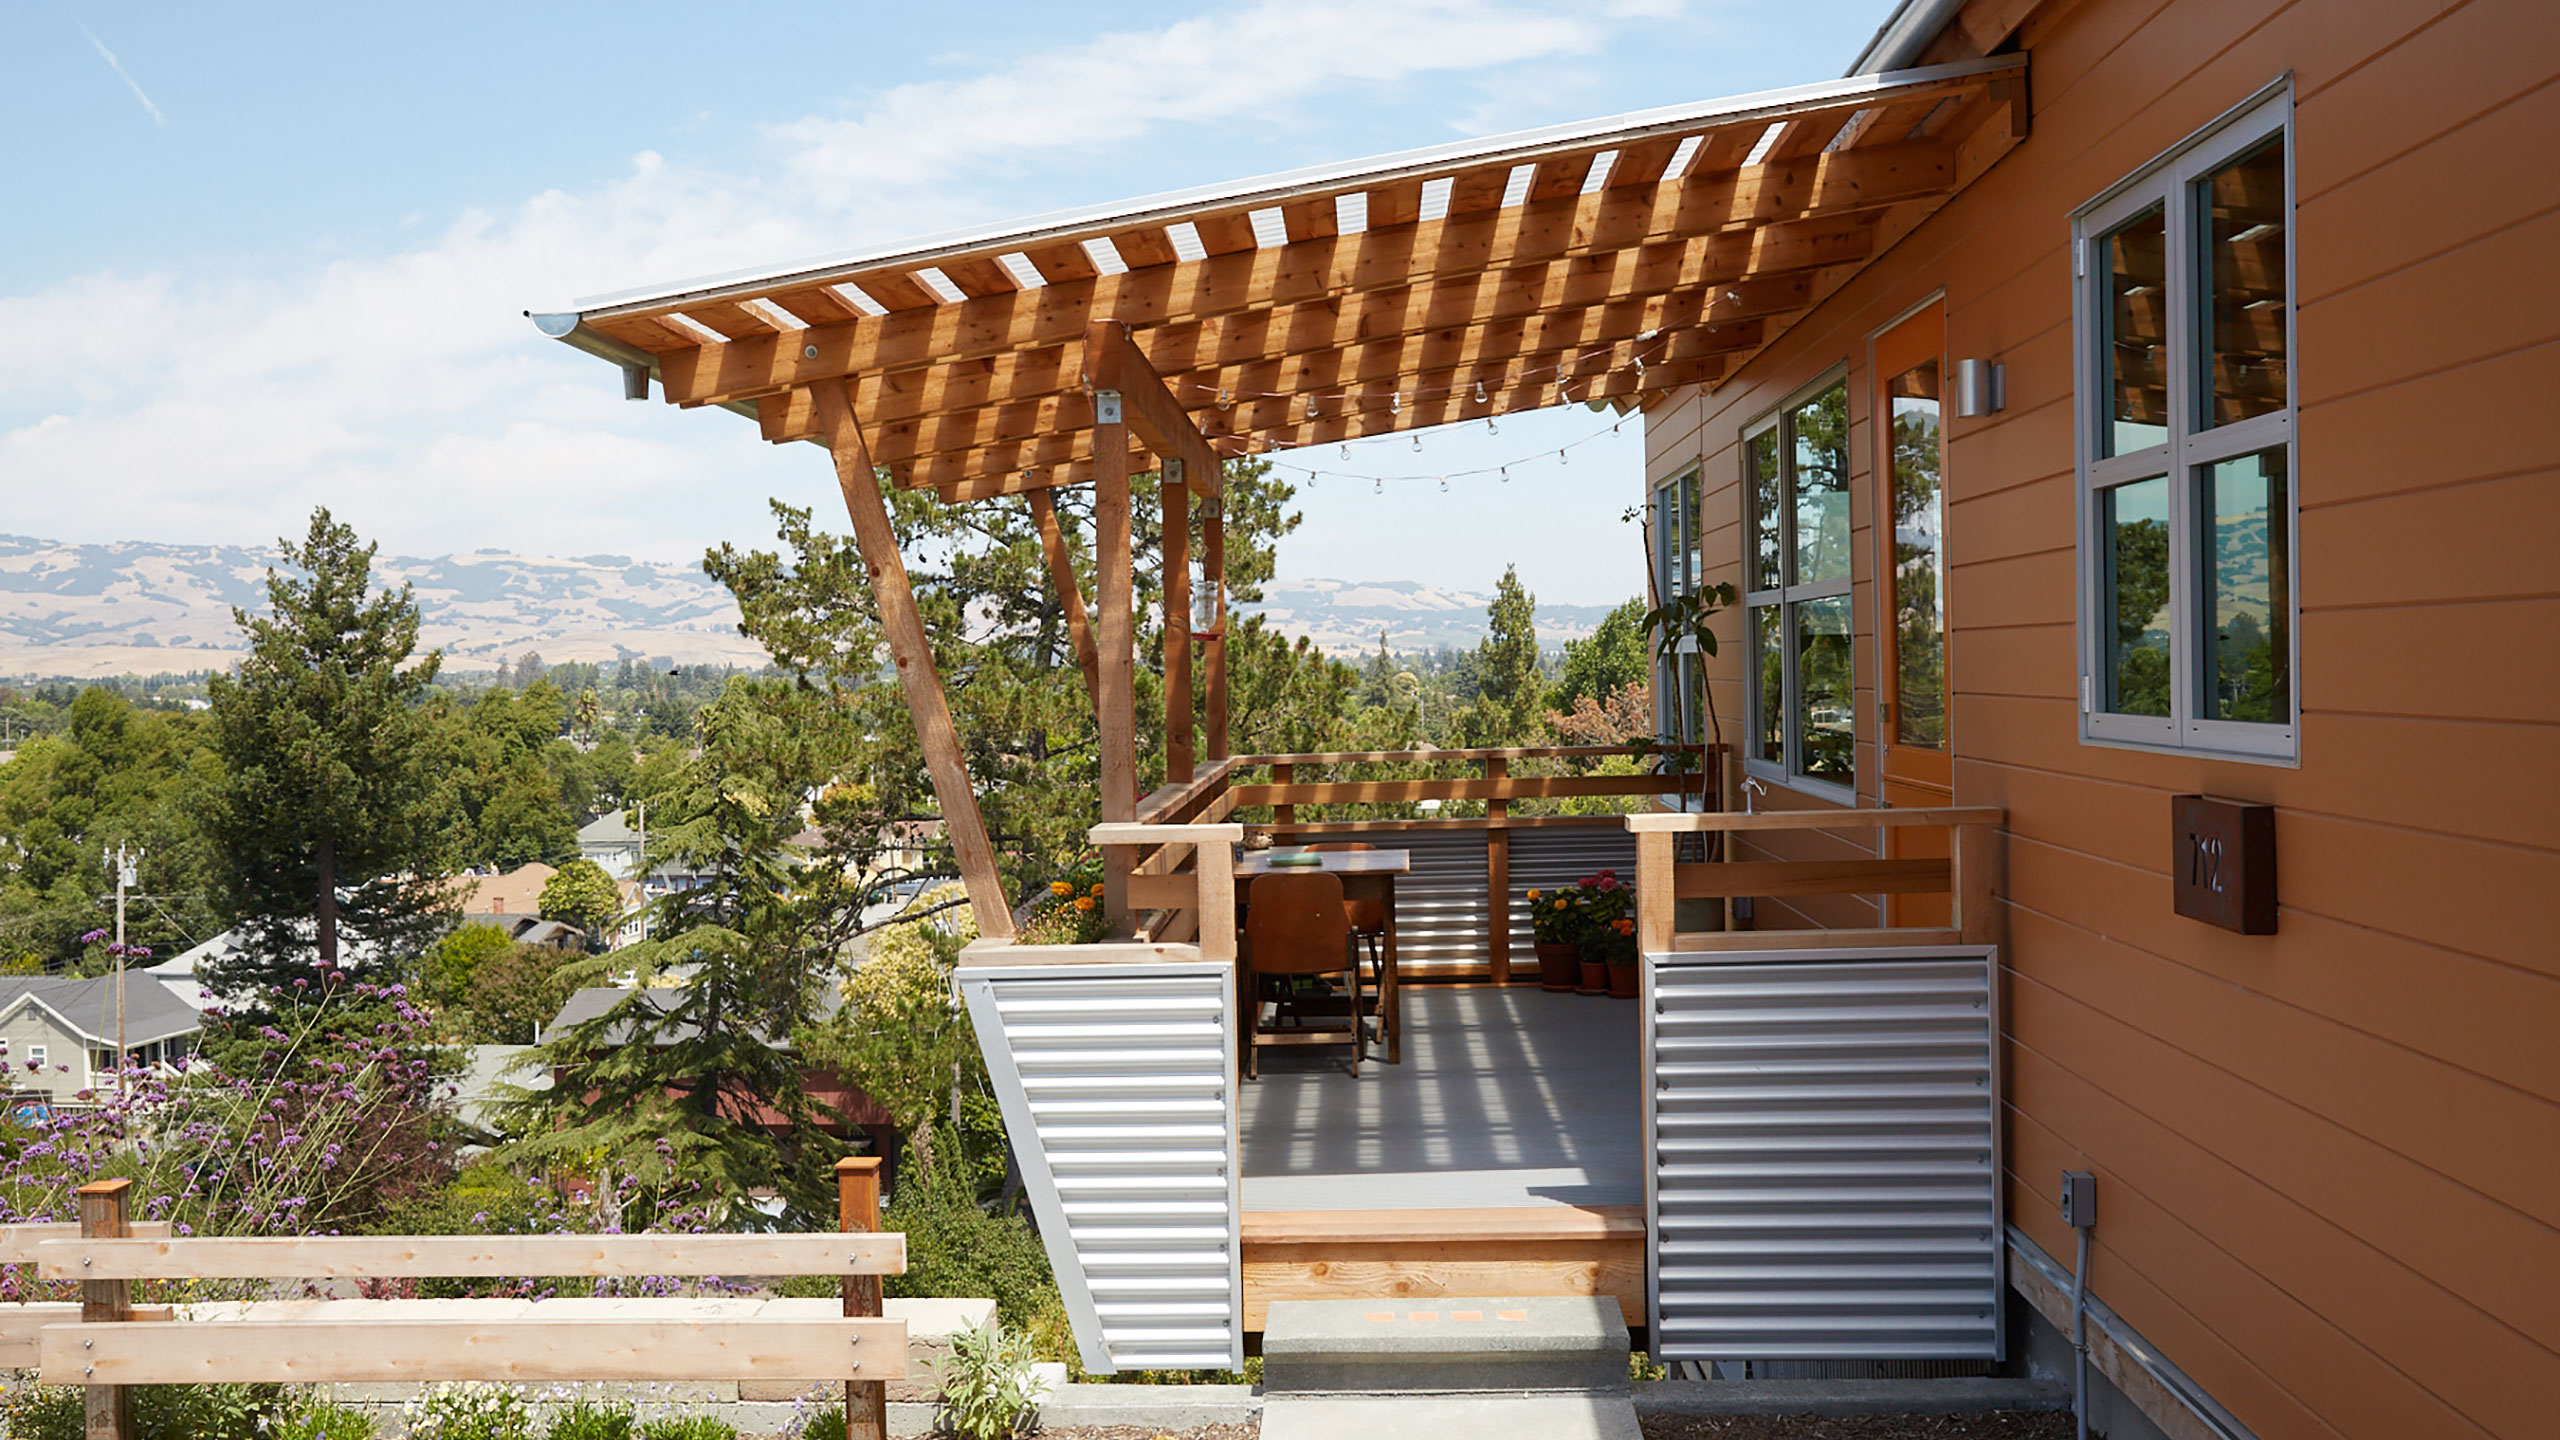 Sustainable-Architecture-Sonoma-County-Keller-Court-wood-balcony